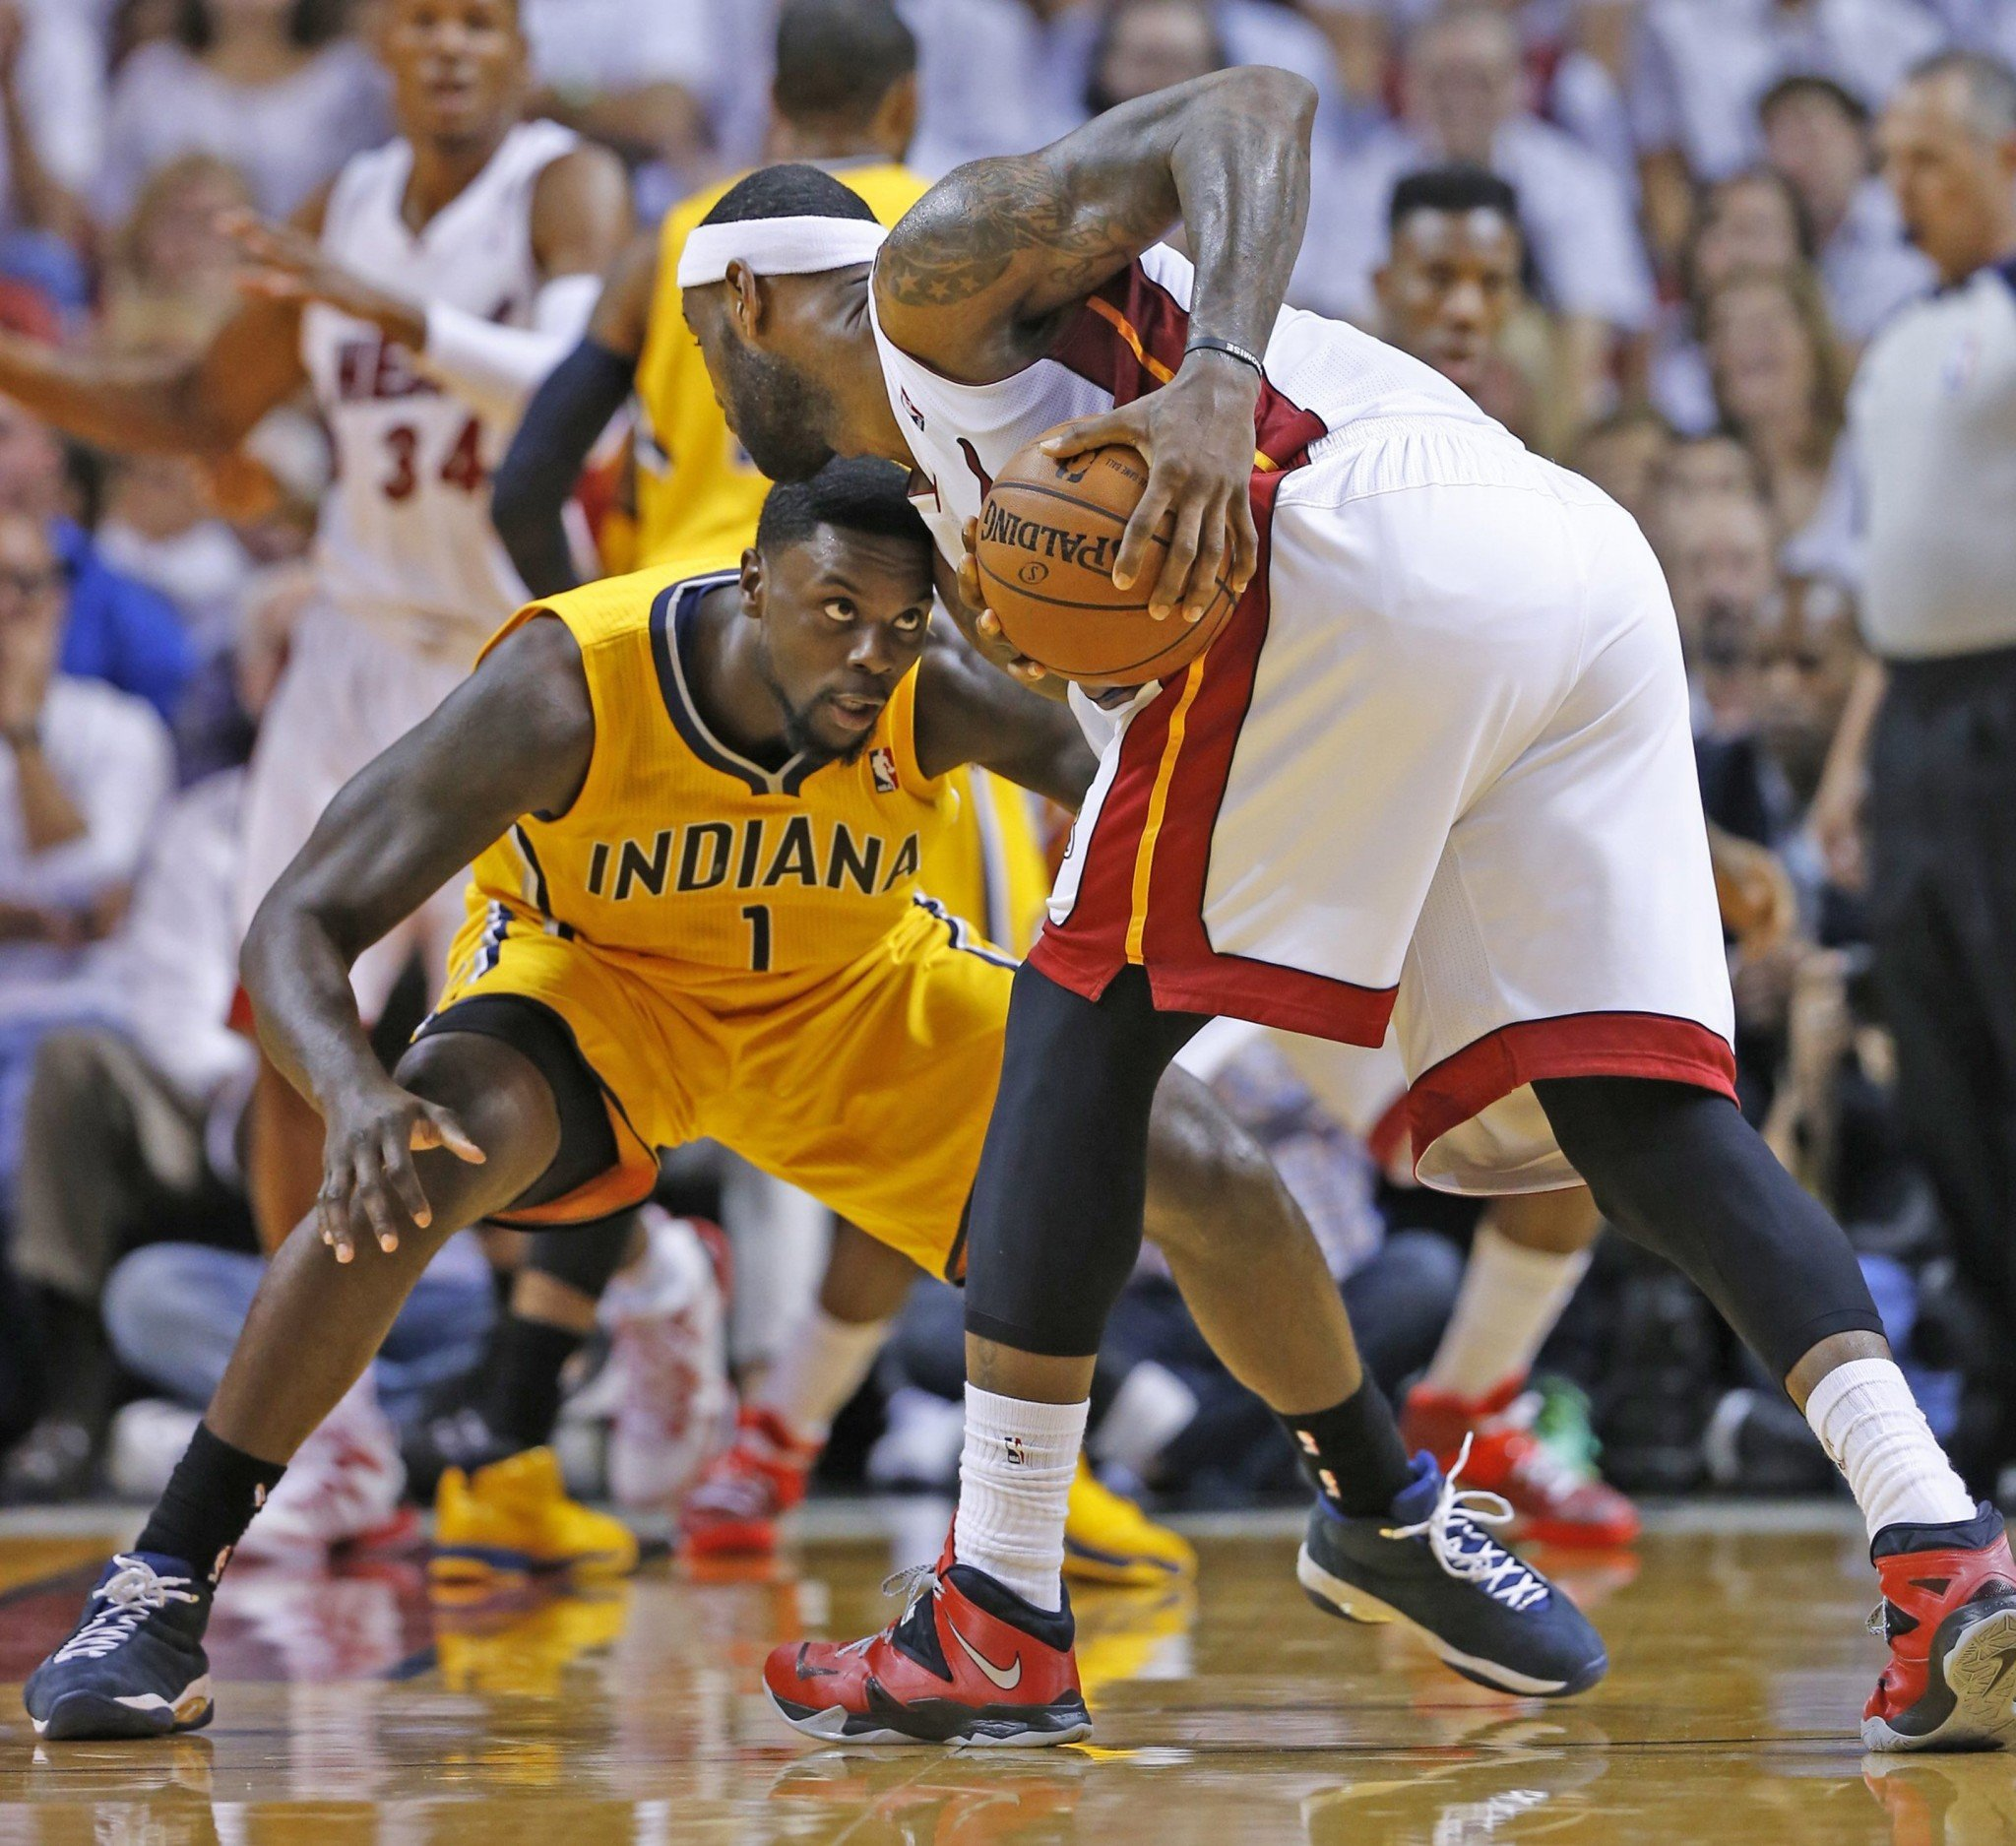 Lance Stephenson got very close to LeBron James when the two matched up in the playoffs. Could he get even closer soon? (Al Diaz/Miami Herald/MCT/Getty Images)